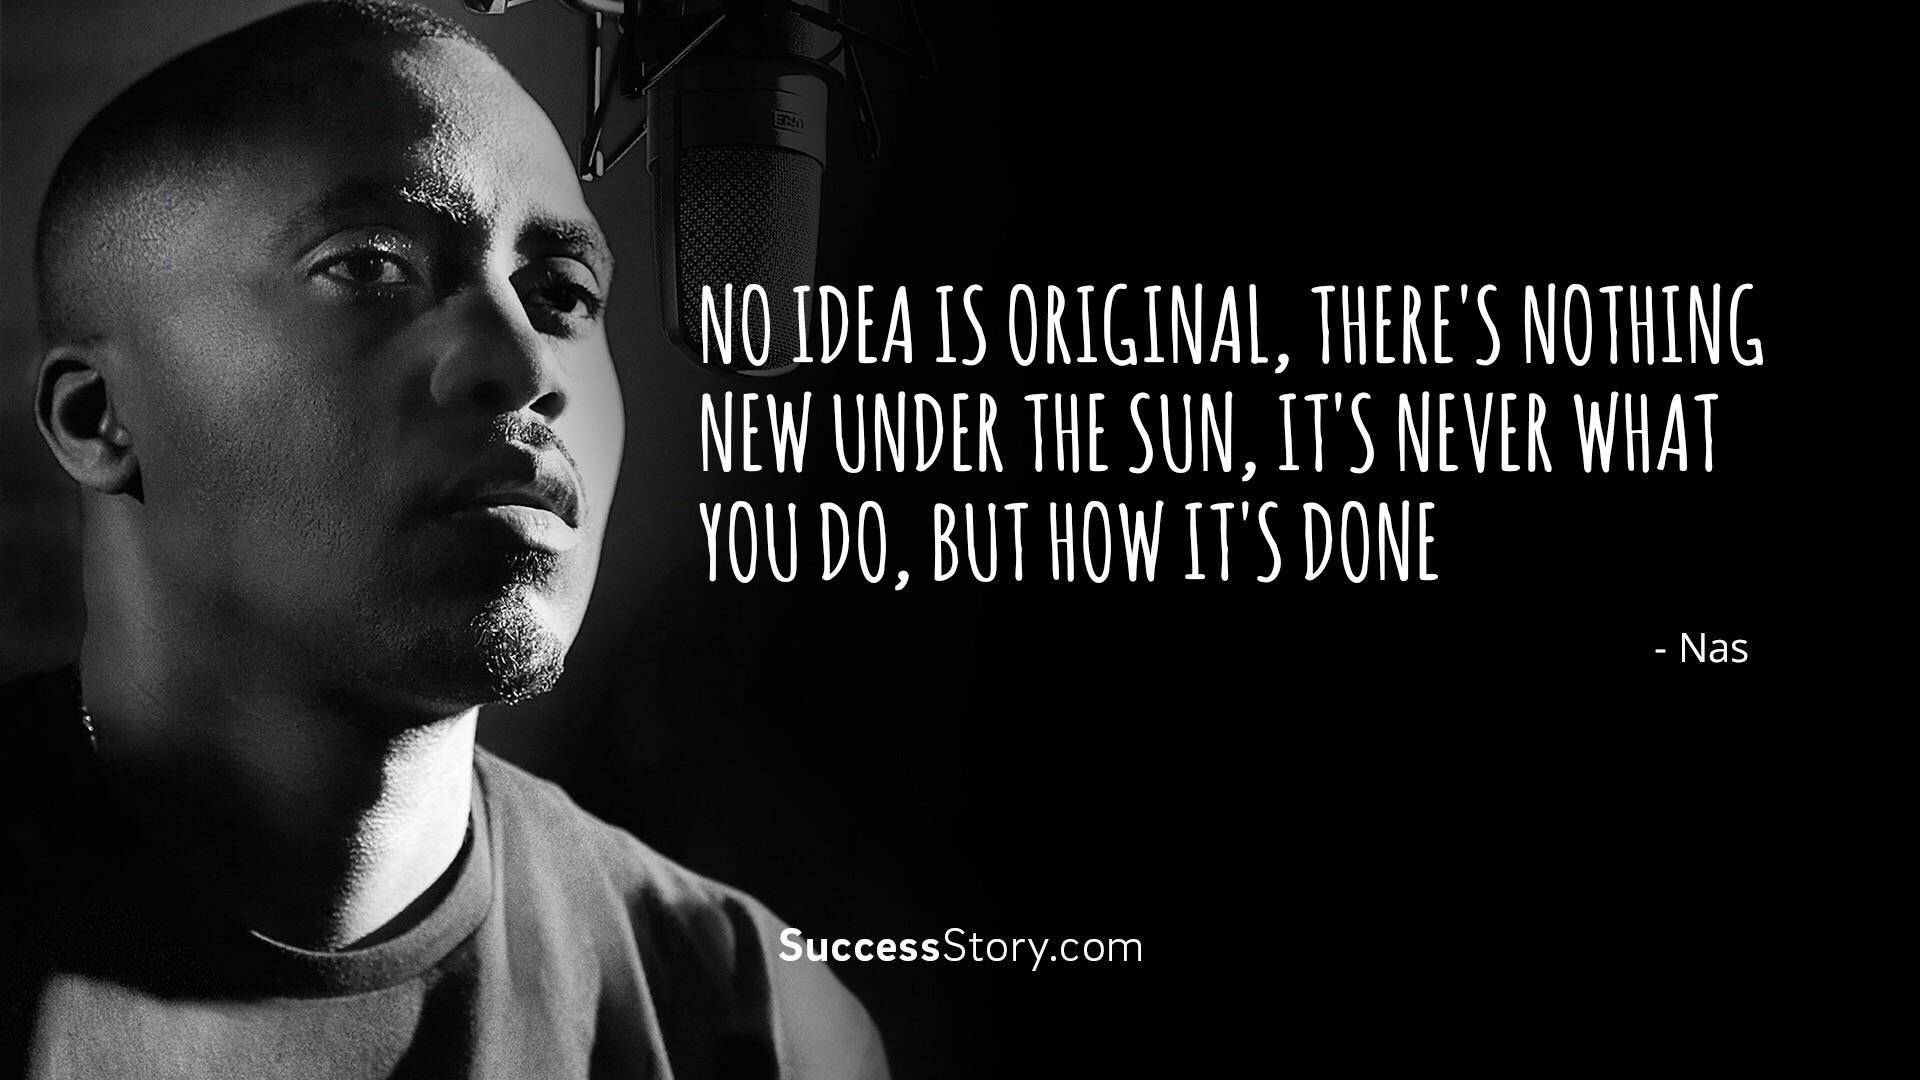 [image] no idea is original